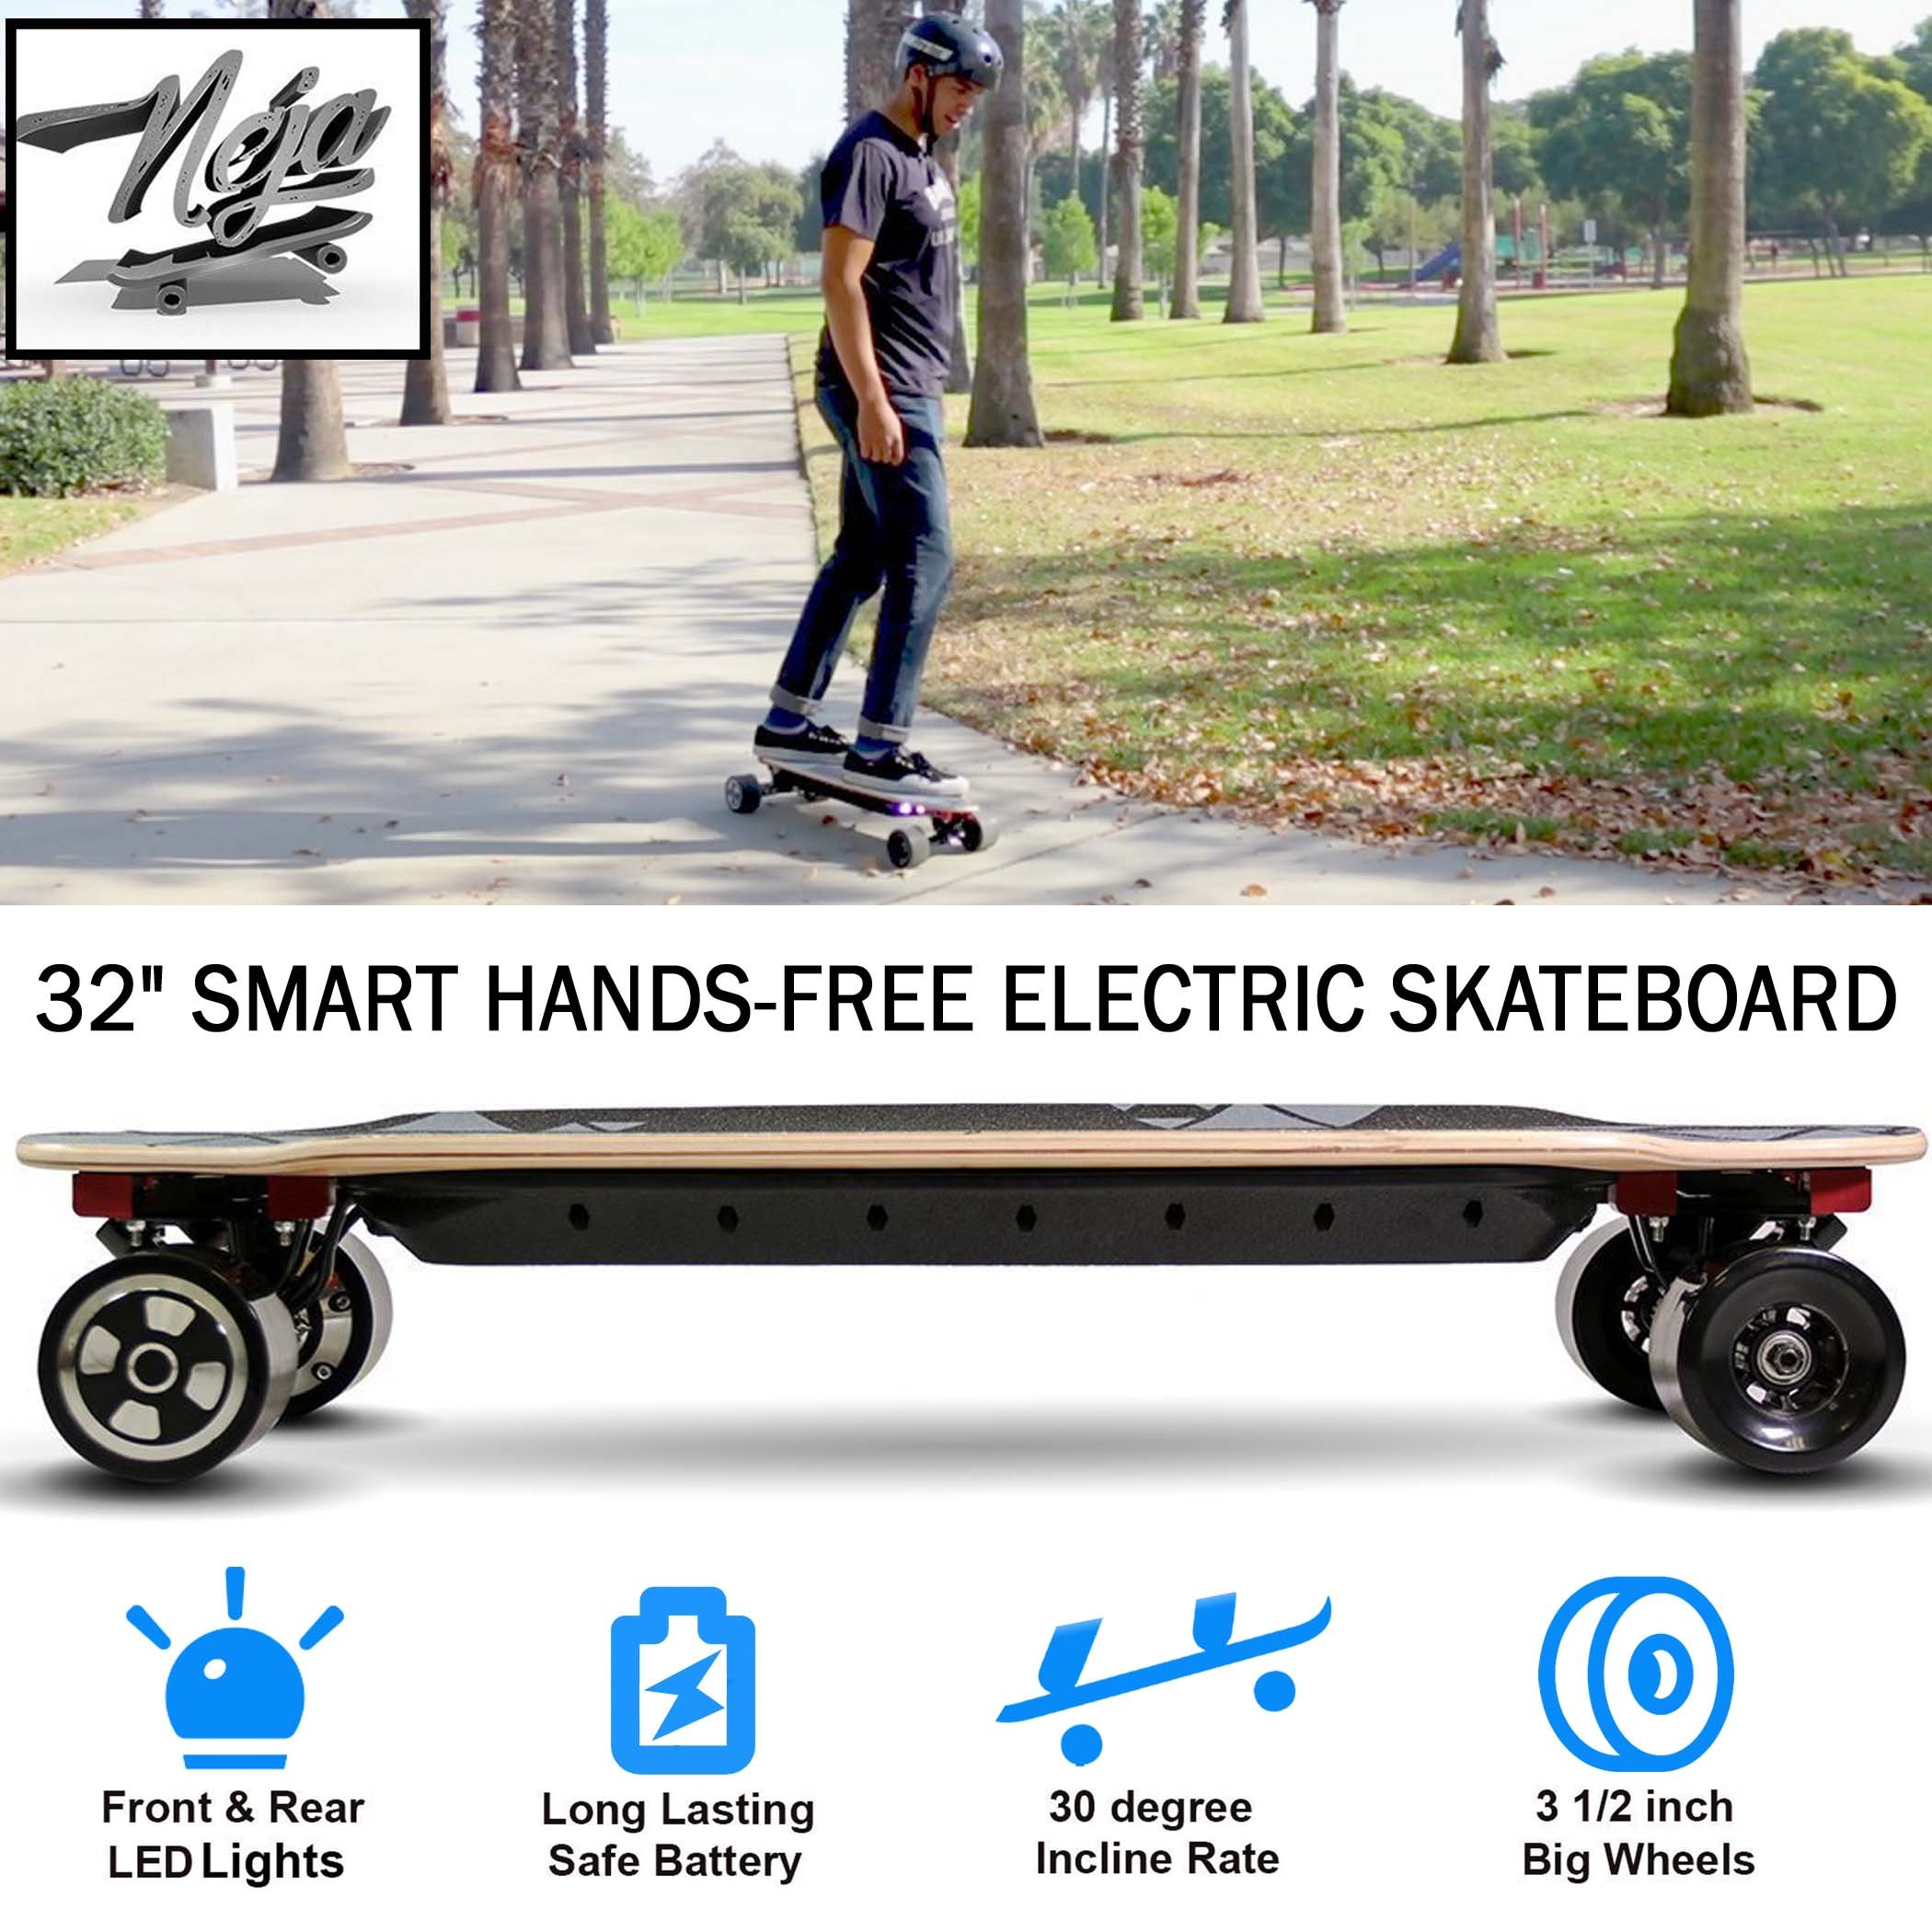 NEJA Self-Balancing Skateboard, Electric Skateboard, 32'' Electric Longboard - Motorized Skateboard with LED Light, NO REMOTE NEED by NEJA